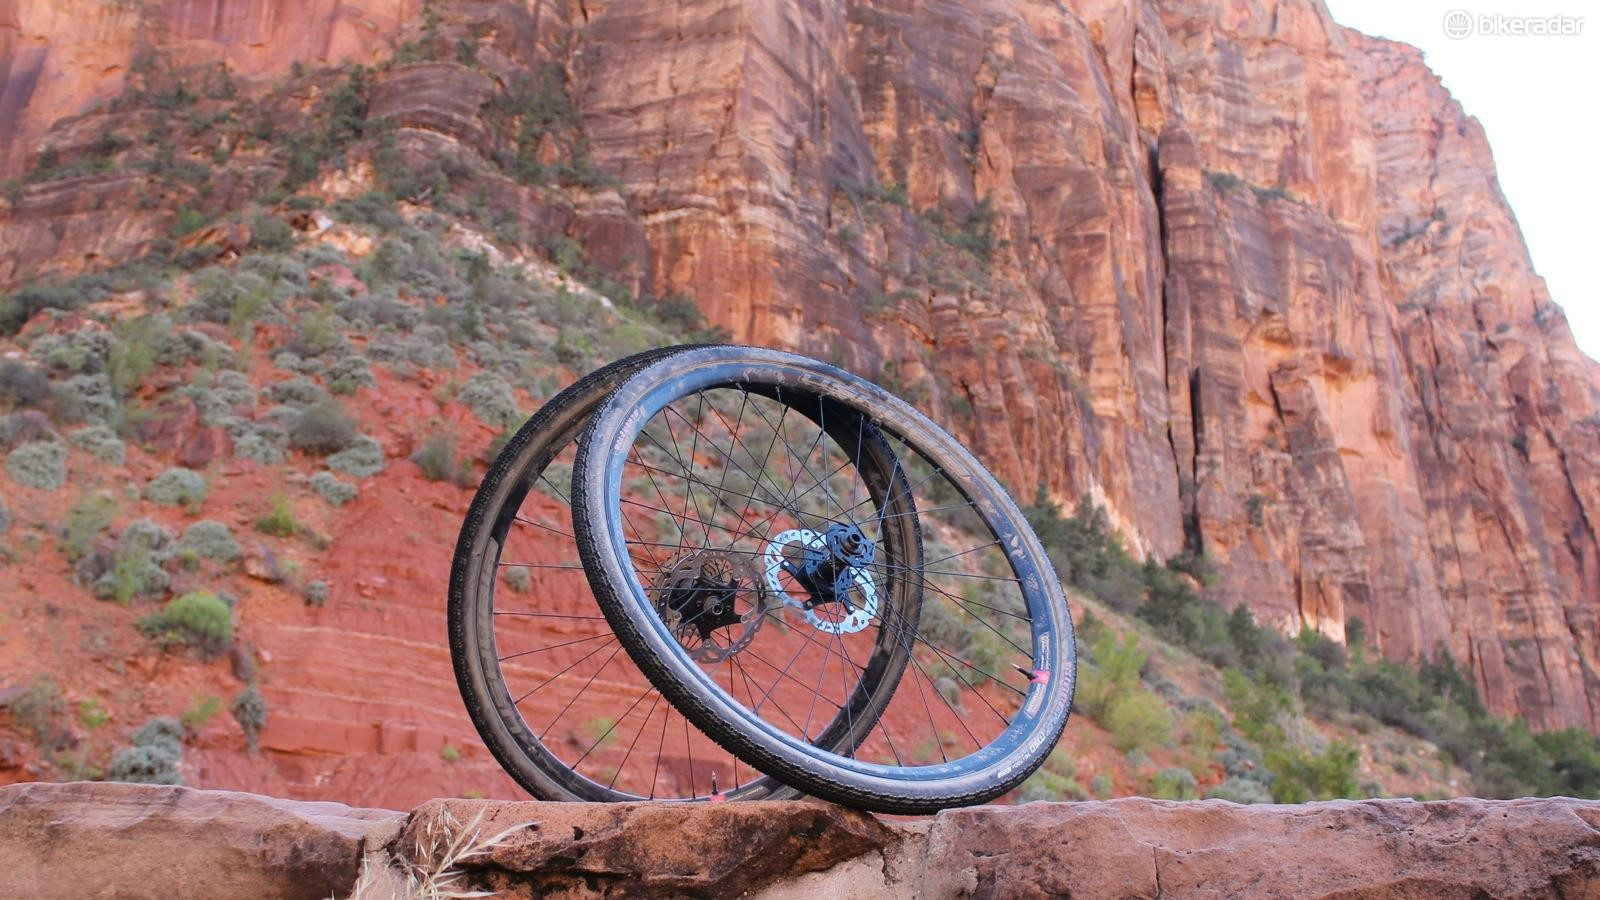 Clément's new Ushuaia 700c tubeless wheels are designed for wide tires and a wide range of road riding